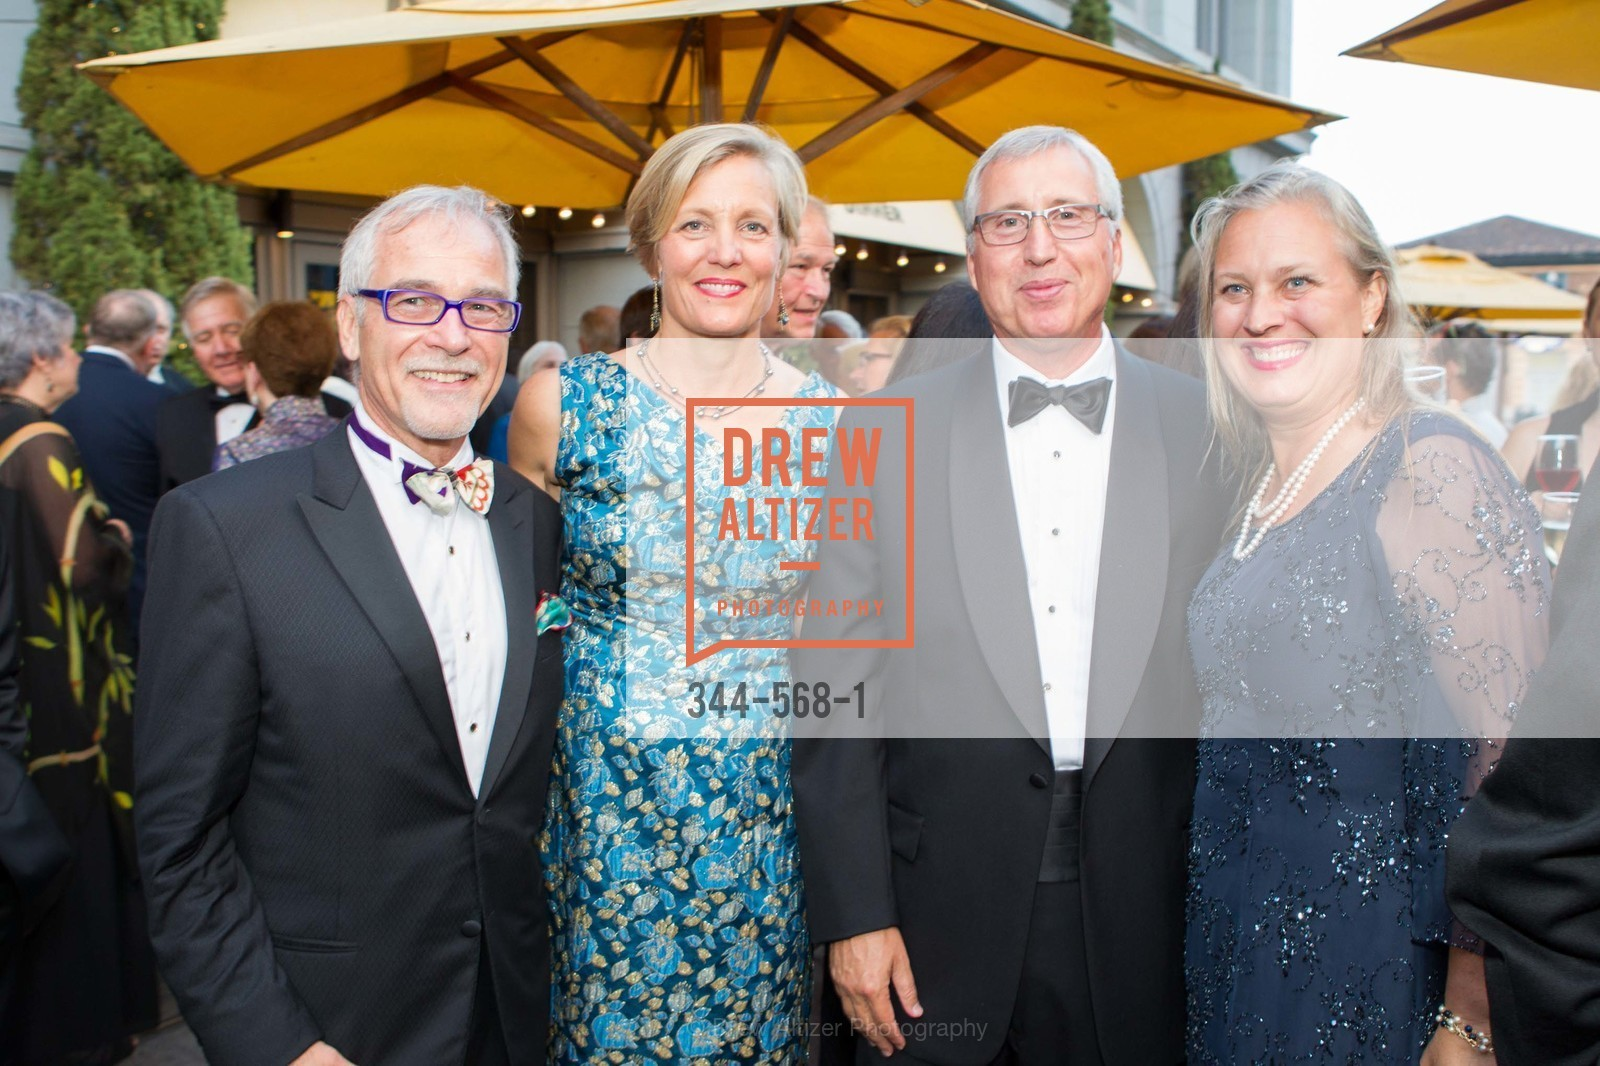 Tim Kochis, Roxanne Richards, Ted Eliot, Cybil Kauffman, SOTHEBY'S  Hosts a Private Viewing of Highlights from the Collection of MRS. PAUL MELLON, US, September 17th, 2014